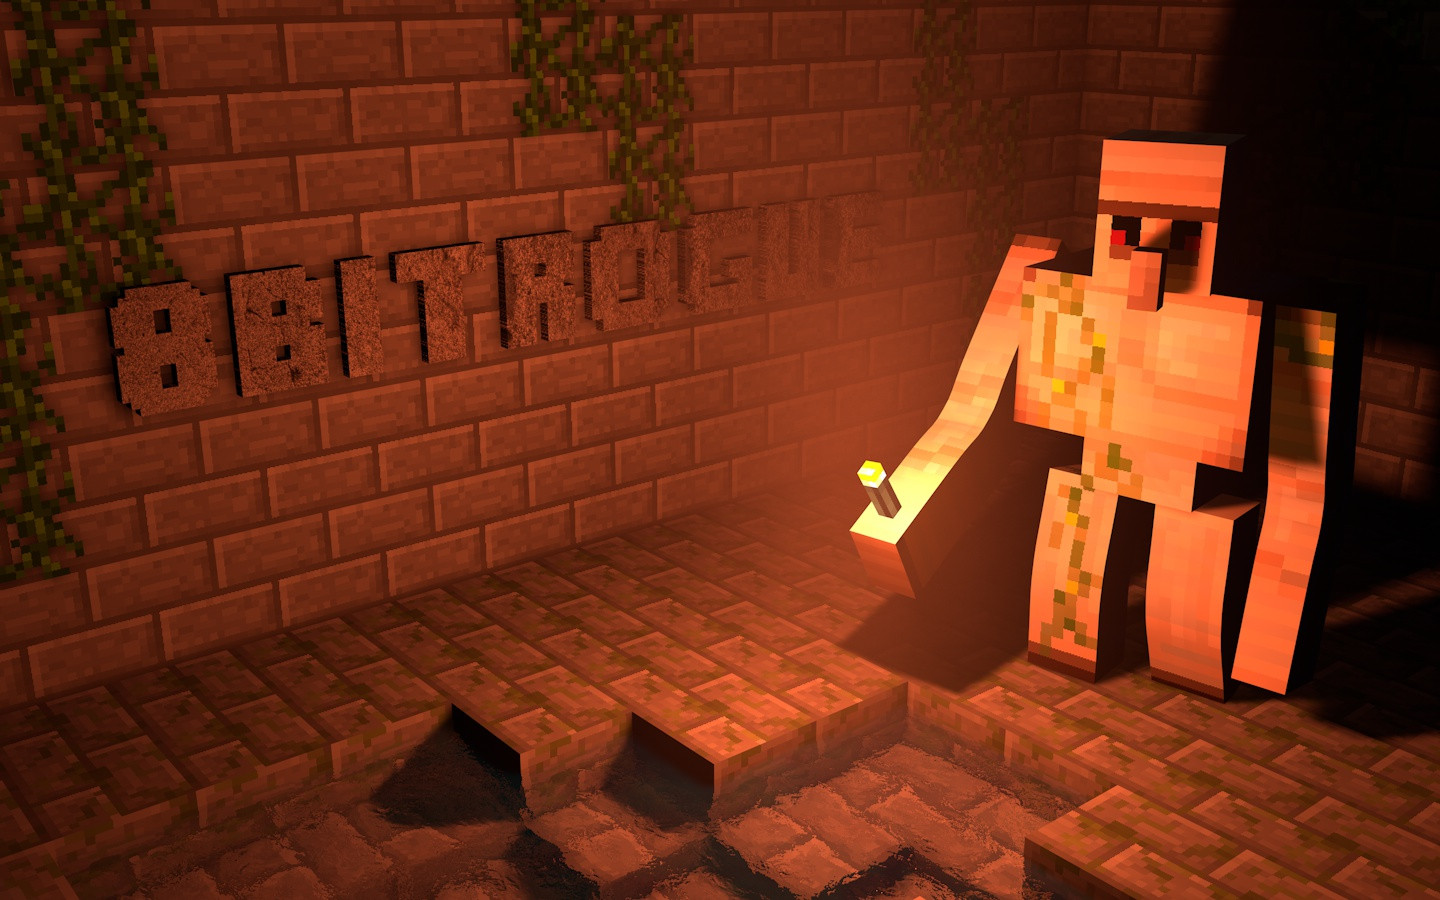 Making you a free minecraft wallpaper! :-) - Art Shops - Shops and